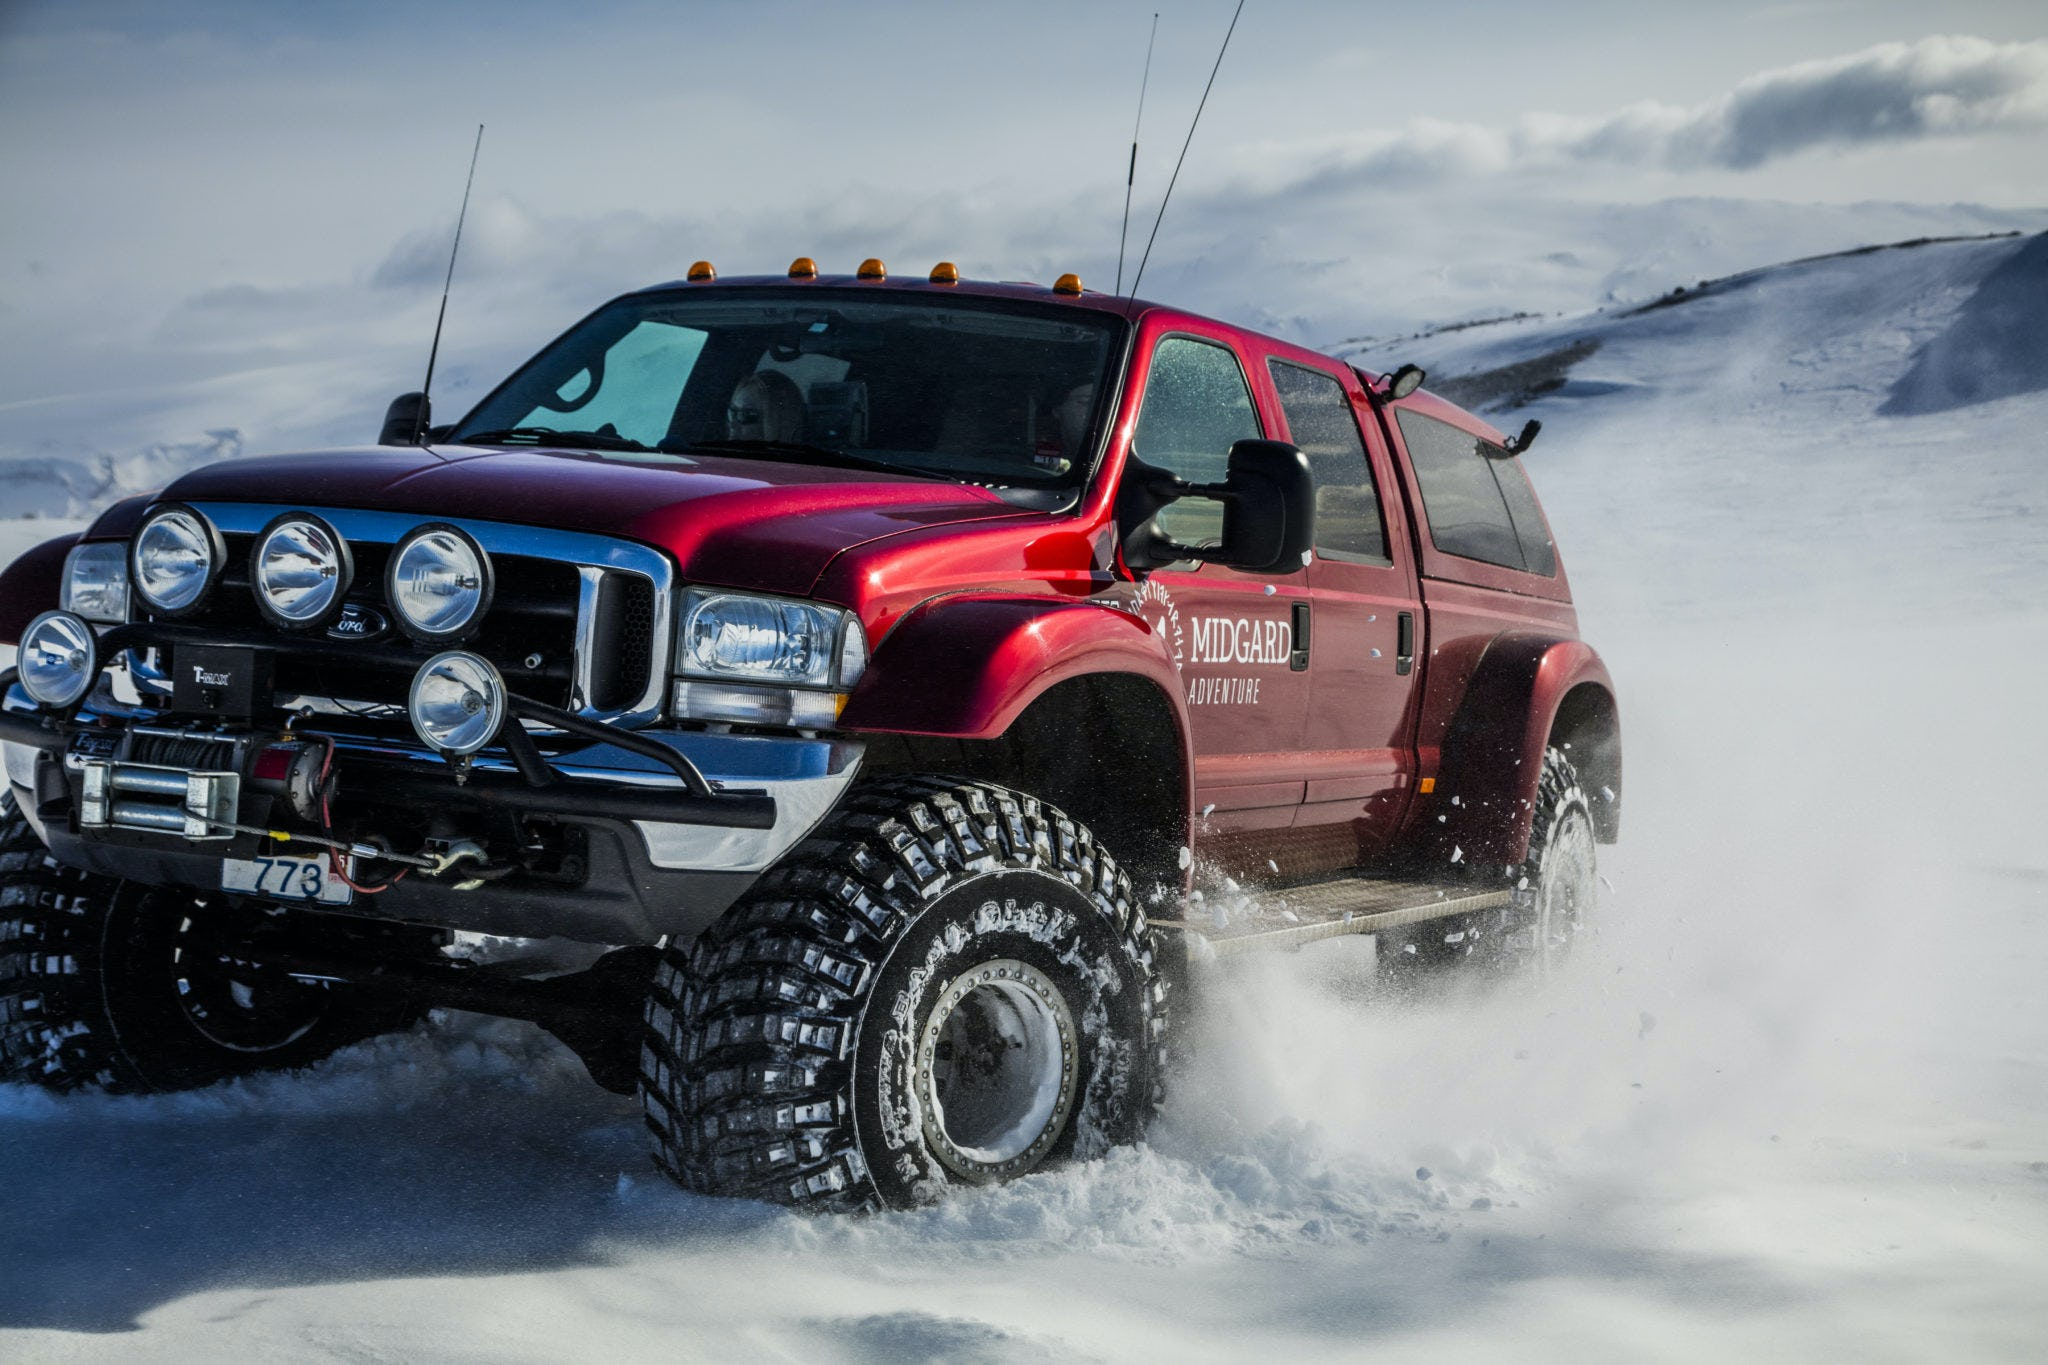 You'll be undertaking your tour in a Ford Excursion, a sturdy vehicle capable of handling Iceland's rough terrain.